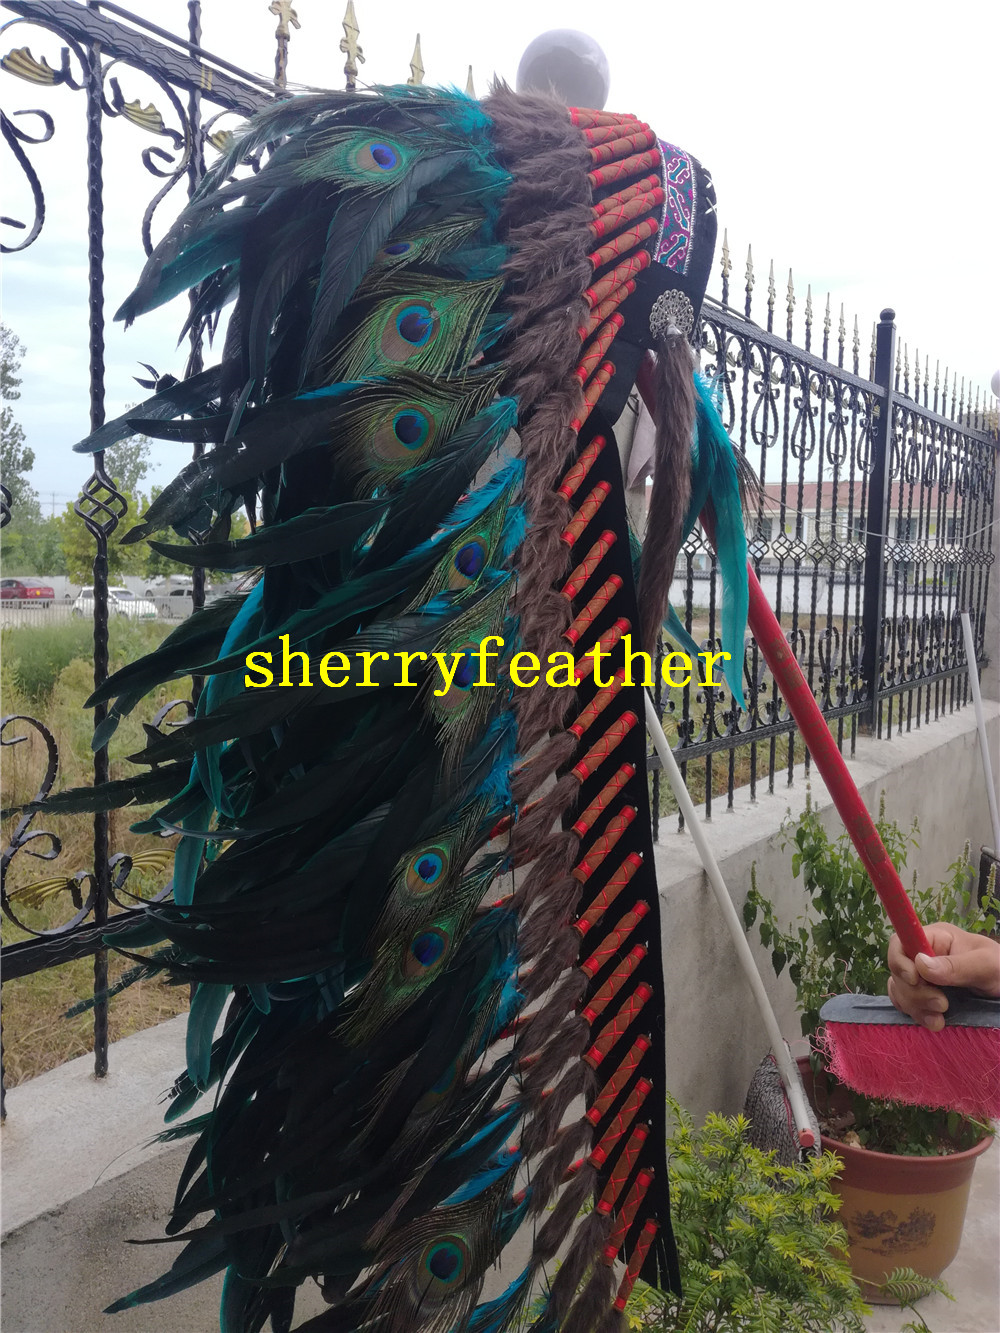 36inch Turquoise Feather headdress handmade feather costume feather hat headpiece headband